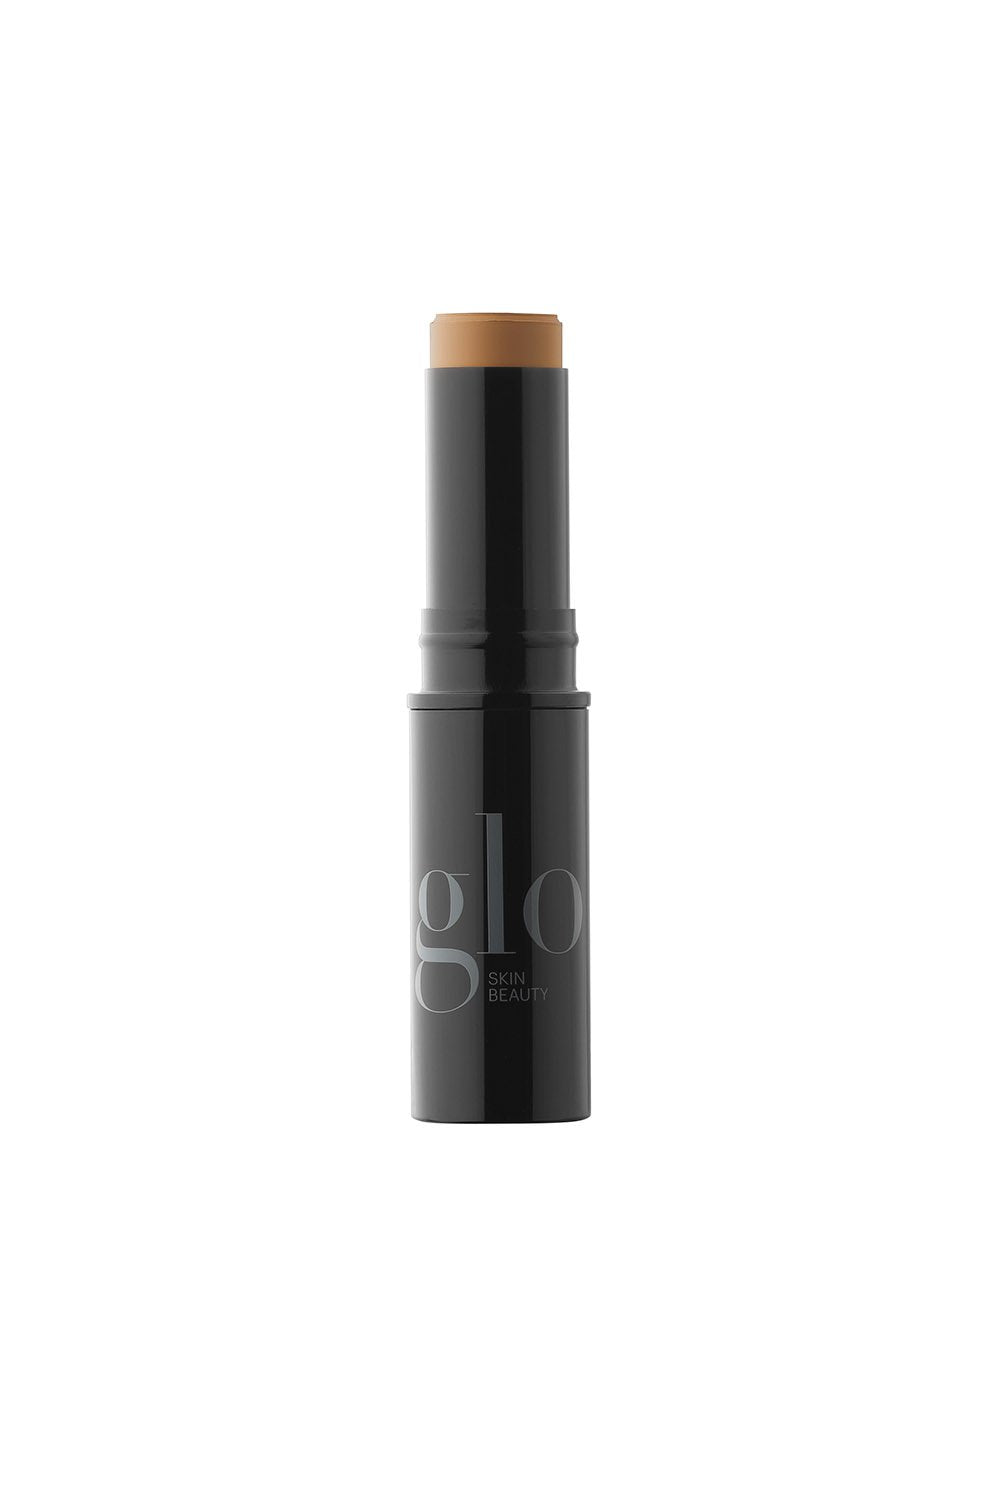 202-1-331 HD Mineral Foundation Stick - Chai 8N